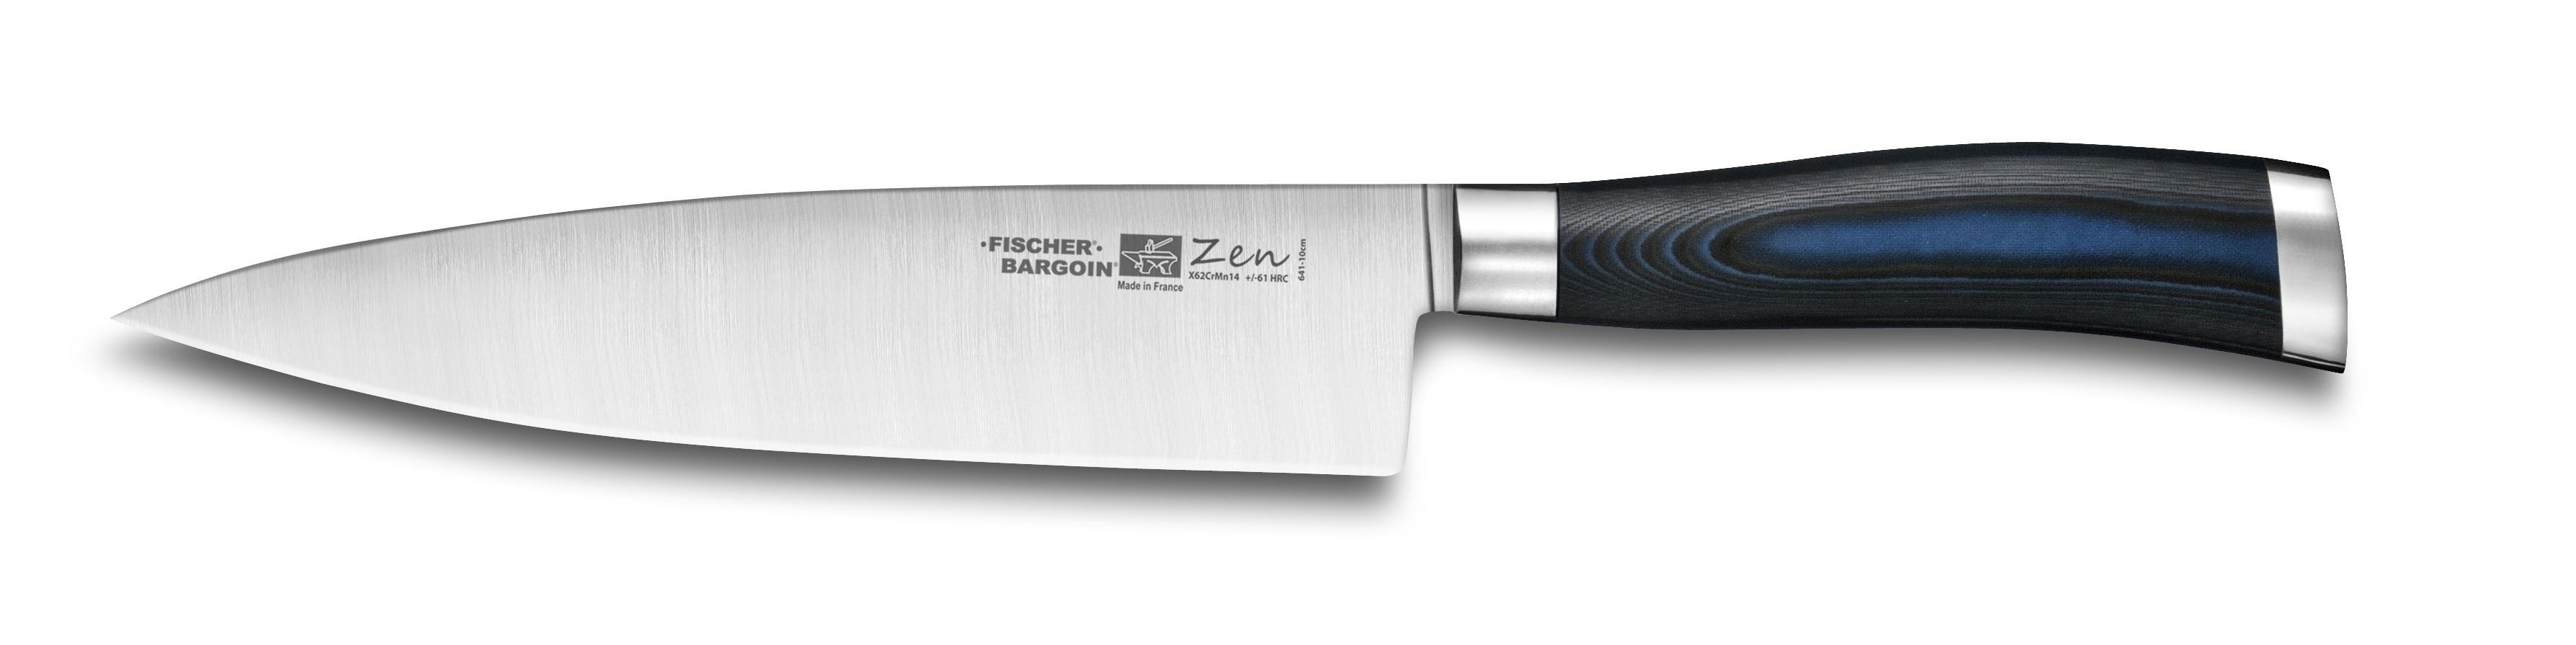 professional kitchen knives sweepstakes fischer zen chef 39s knife 20cm made in france